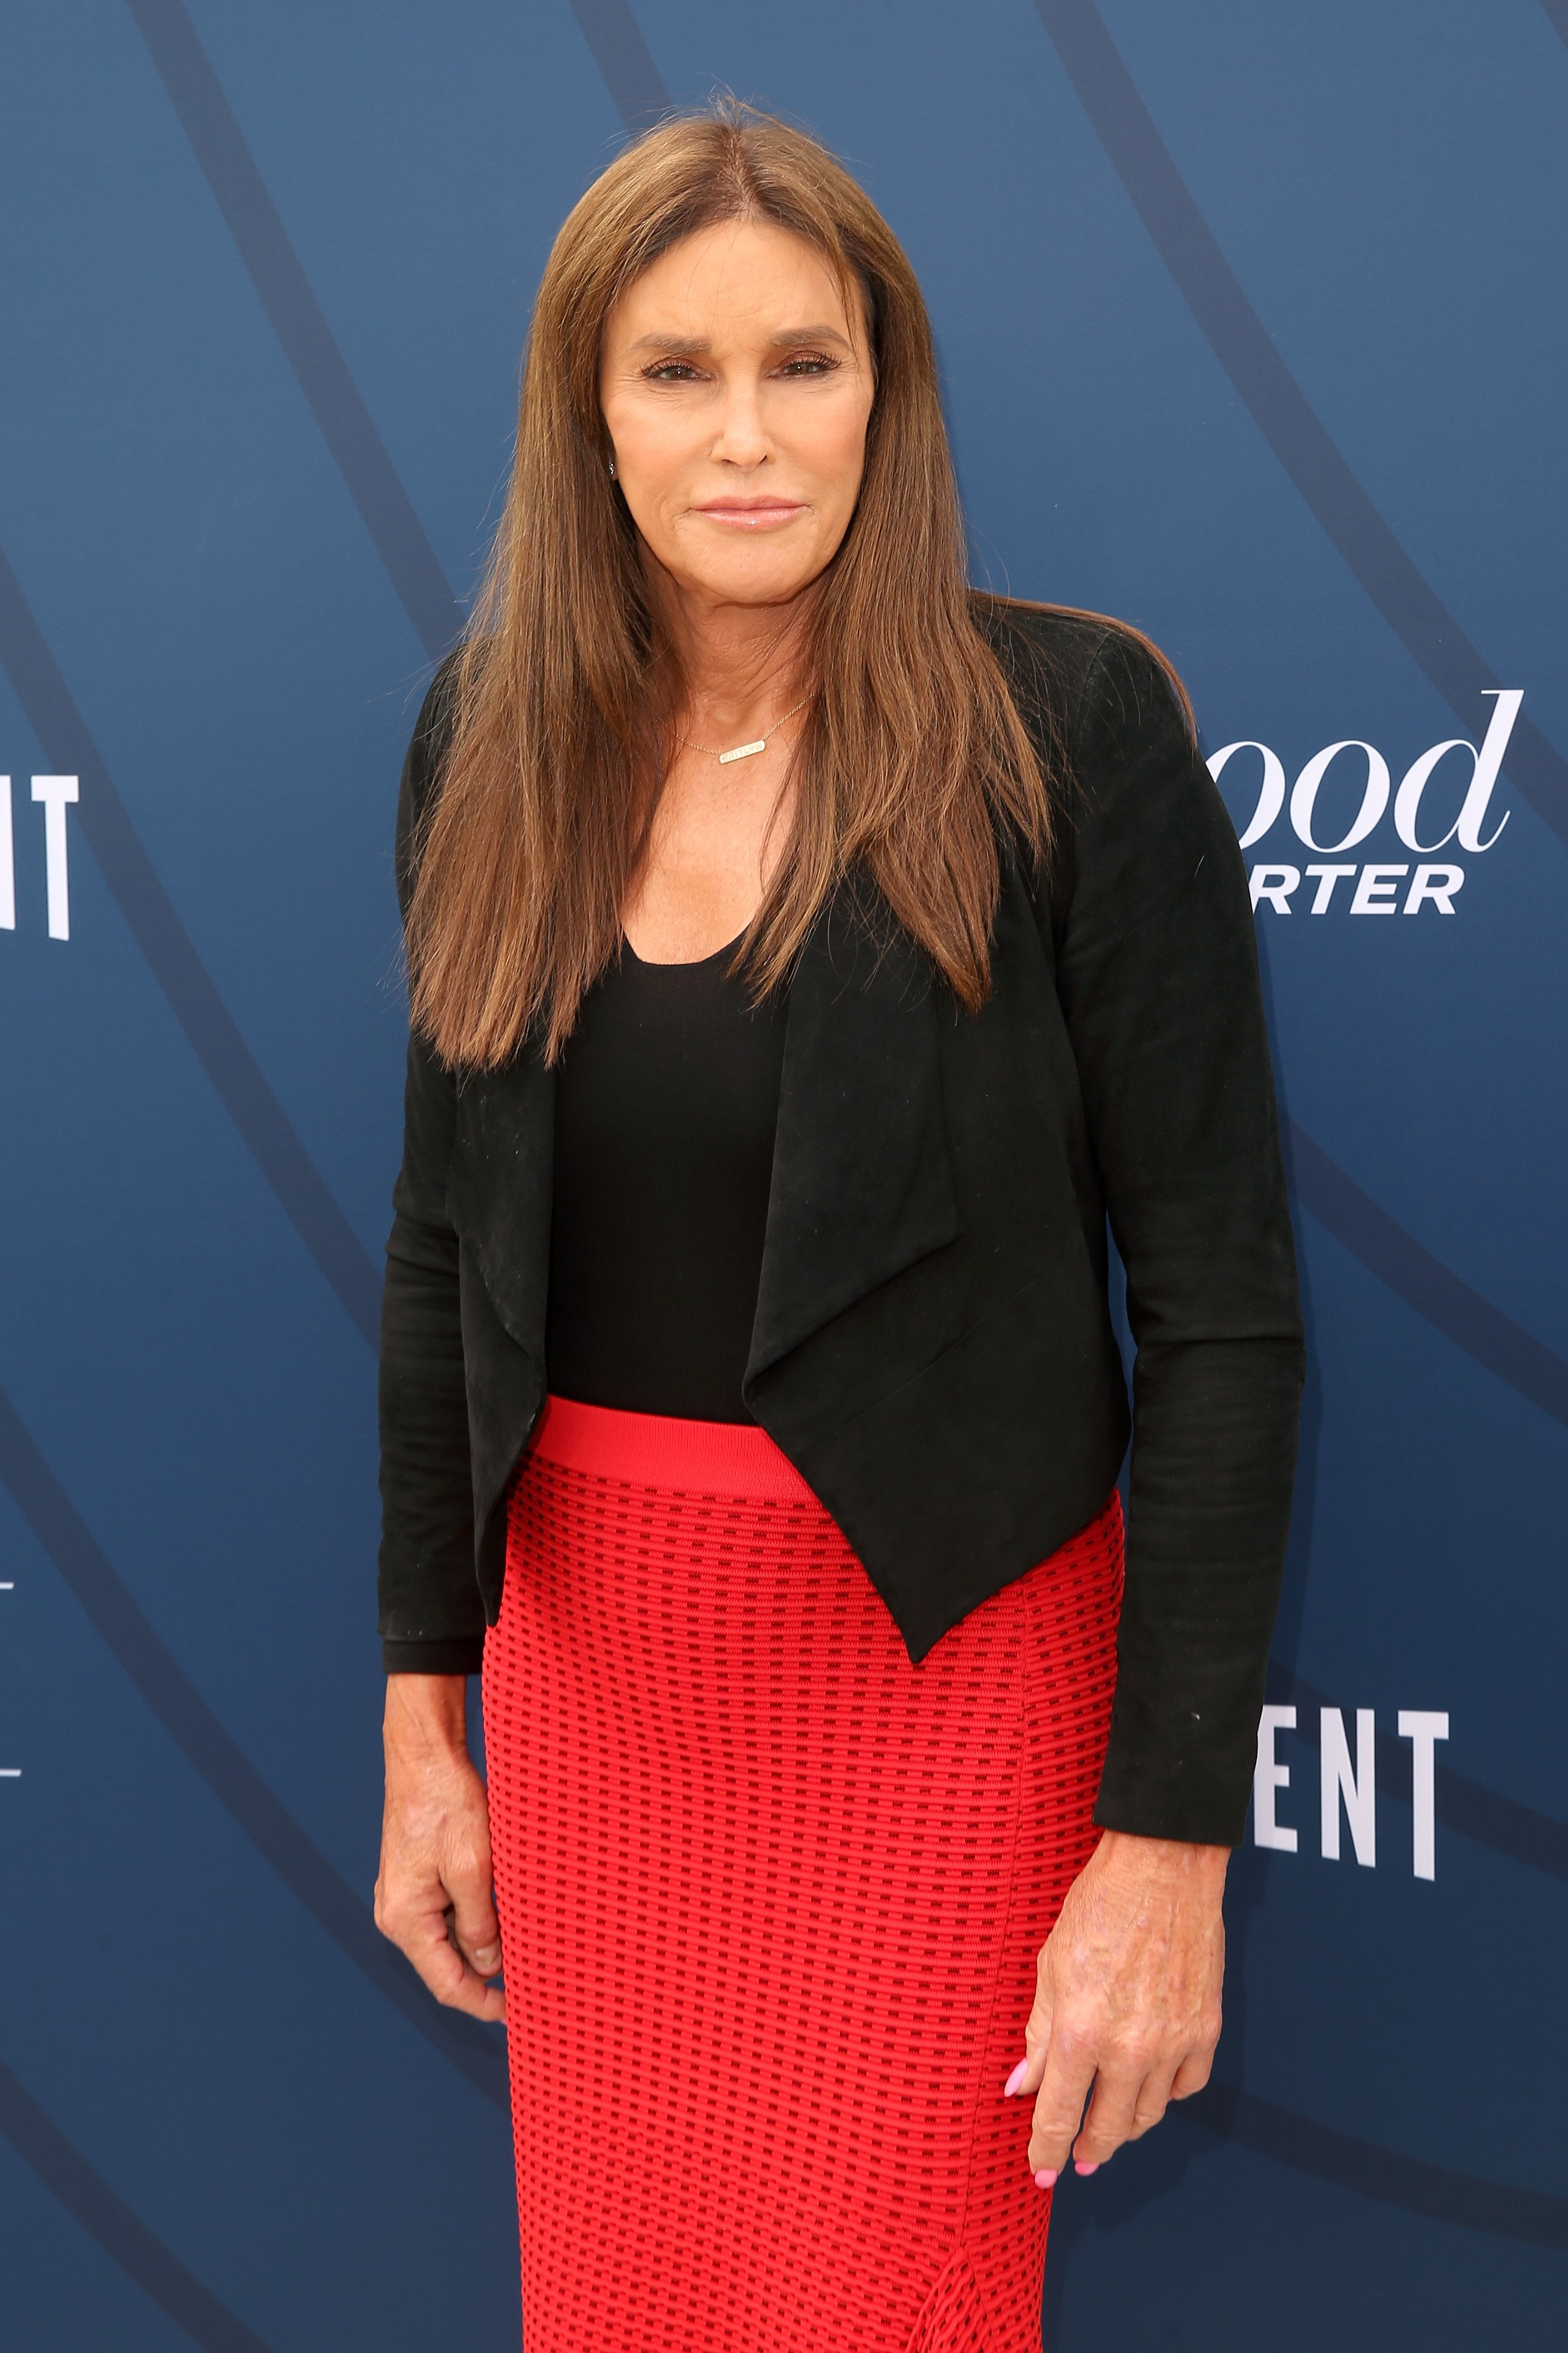 Caitlyn Jenner assiste à l'Empowerment In Entertainment Event 2019 du Hollywood Reporter's Empowerment in 2019 au Milk Studios le 30 avril 2019, à Los Angeles, Californie. | Photo : Getty Images